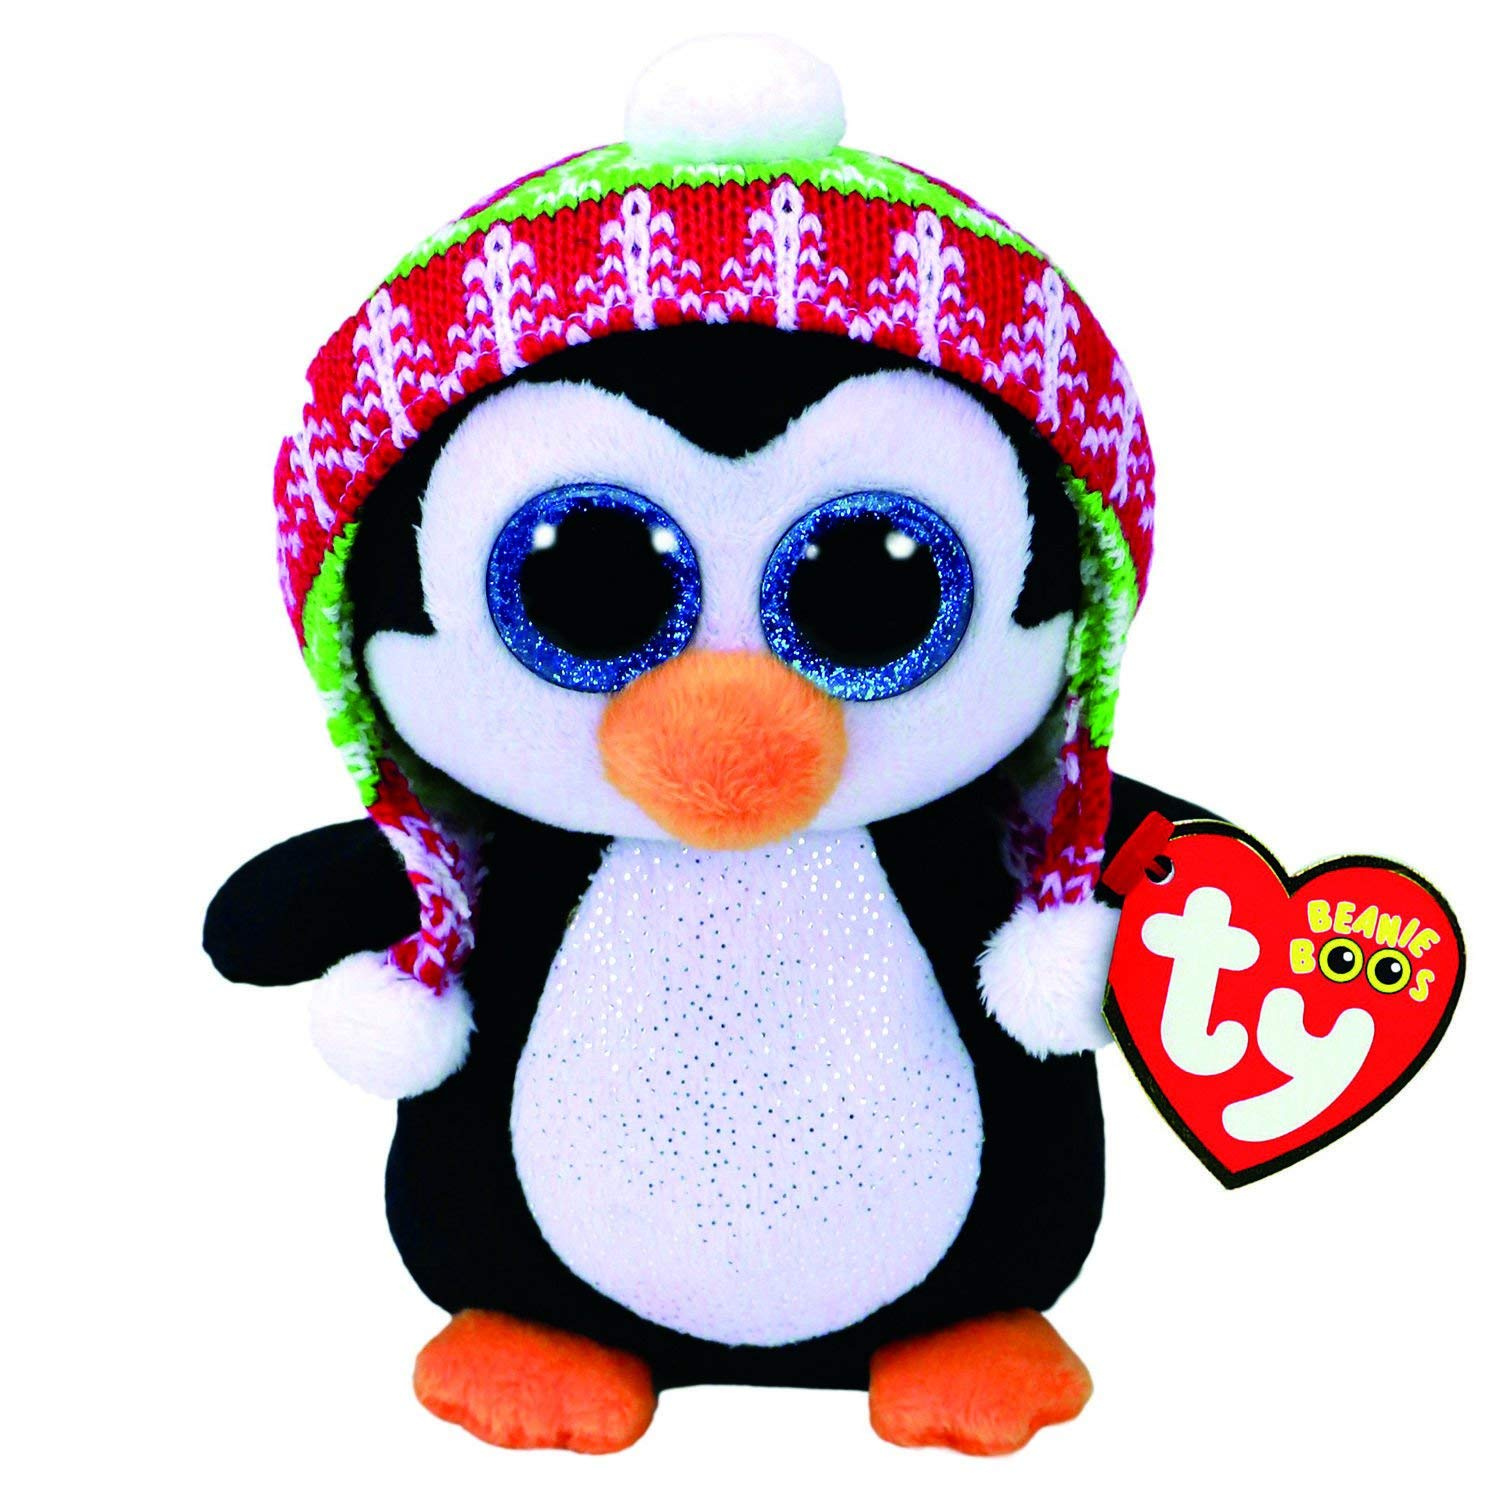 55121c4a2f7 Claire s Girl s TY Beanie Boo Penelope the Penguin Medium Plush Toy in  Black White by Ty - Shop Online for Toys in New Zealand